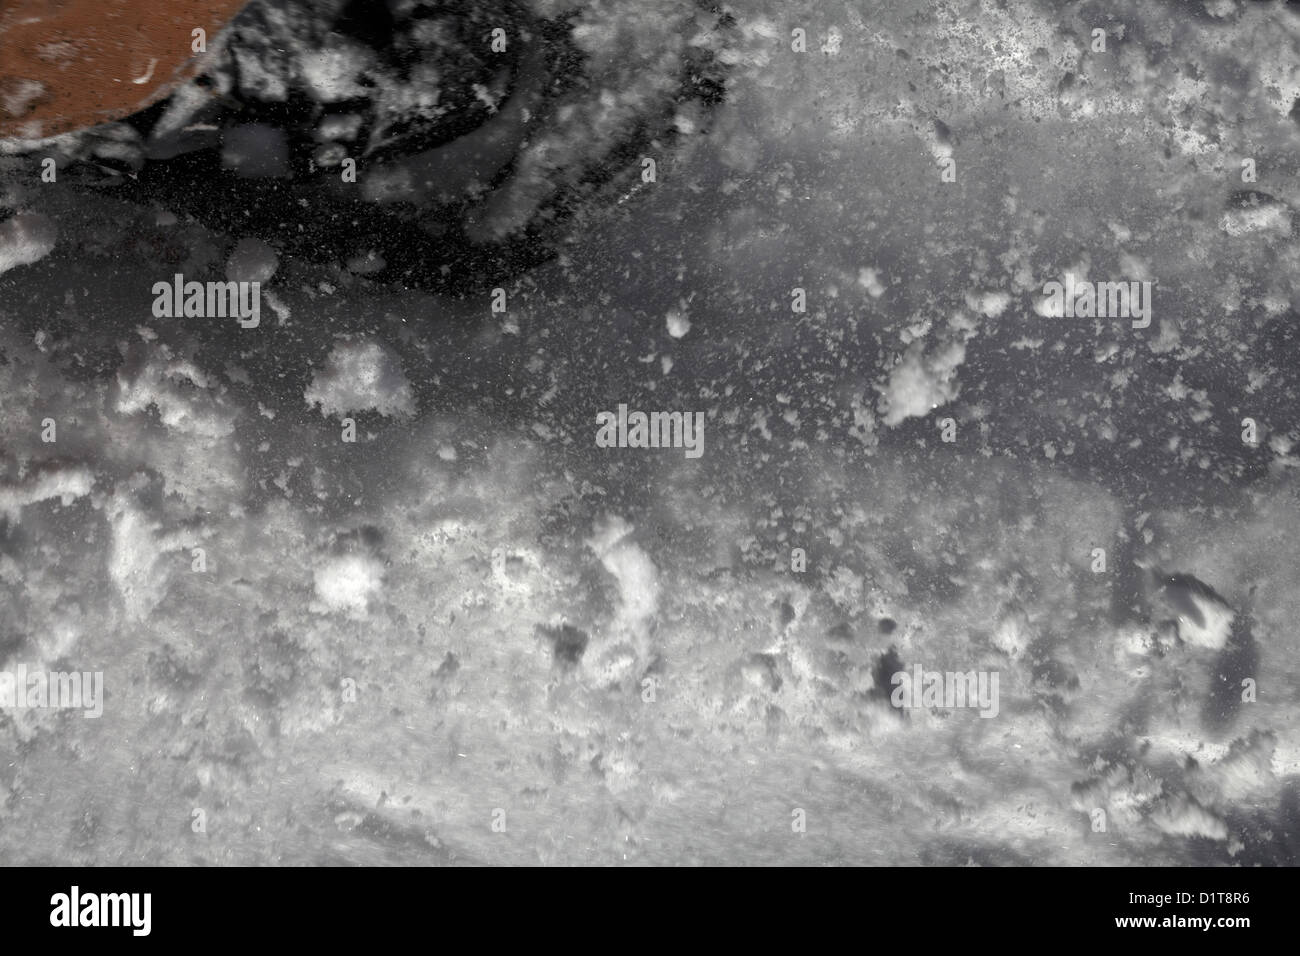 Snow particles in the air ahead of a snowshoe. Stock Photo